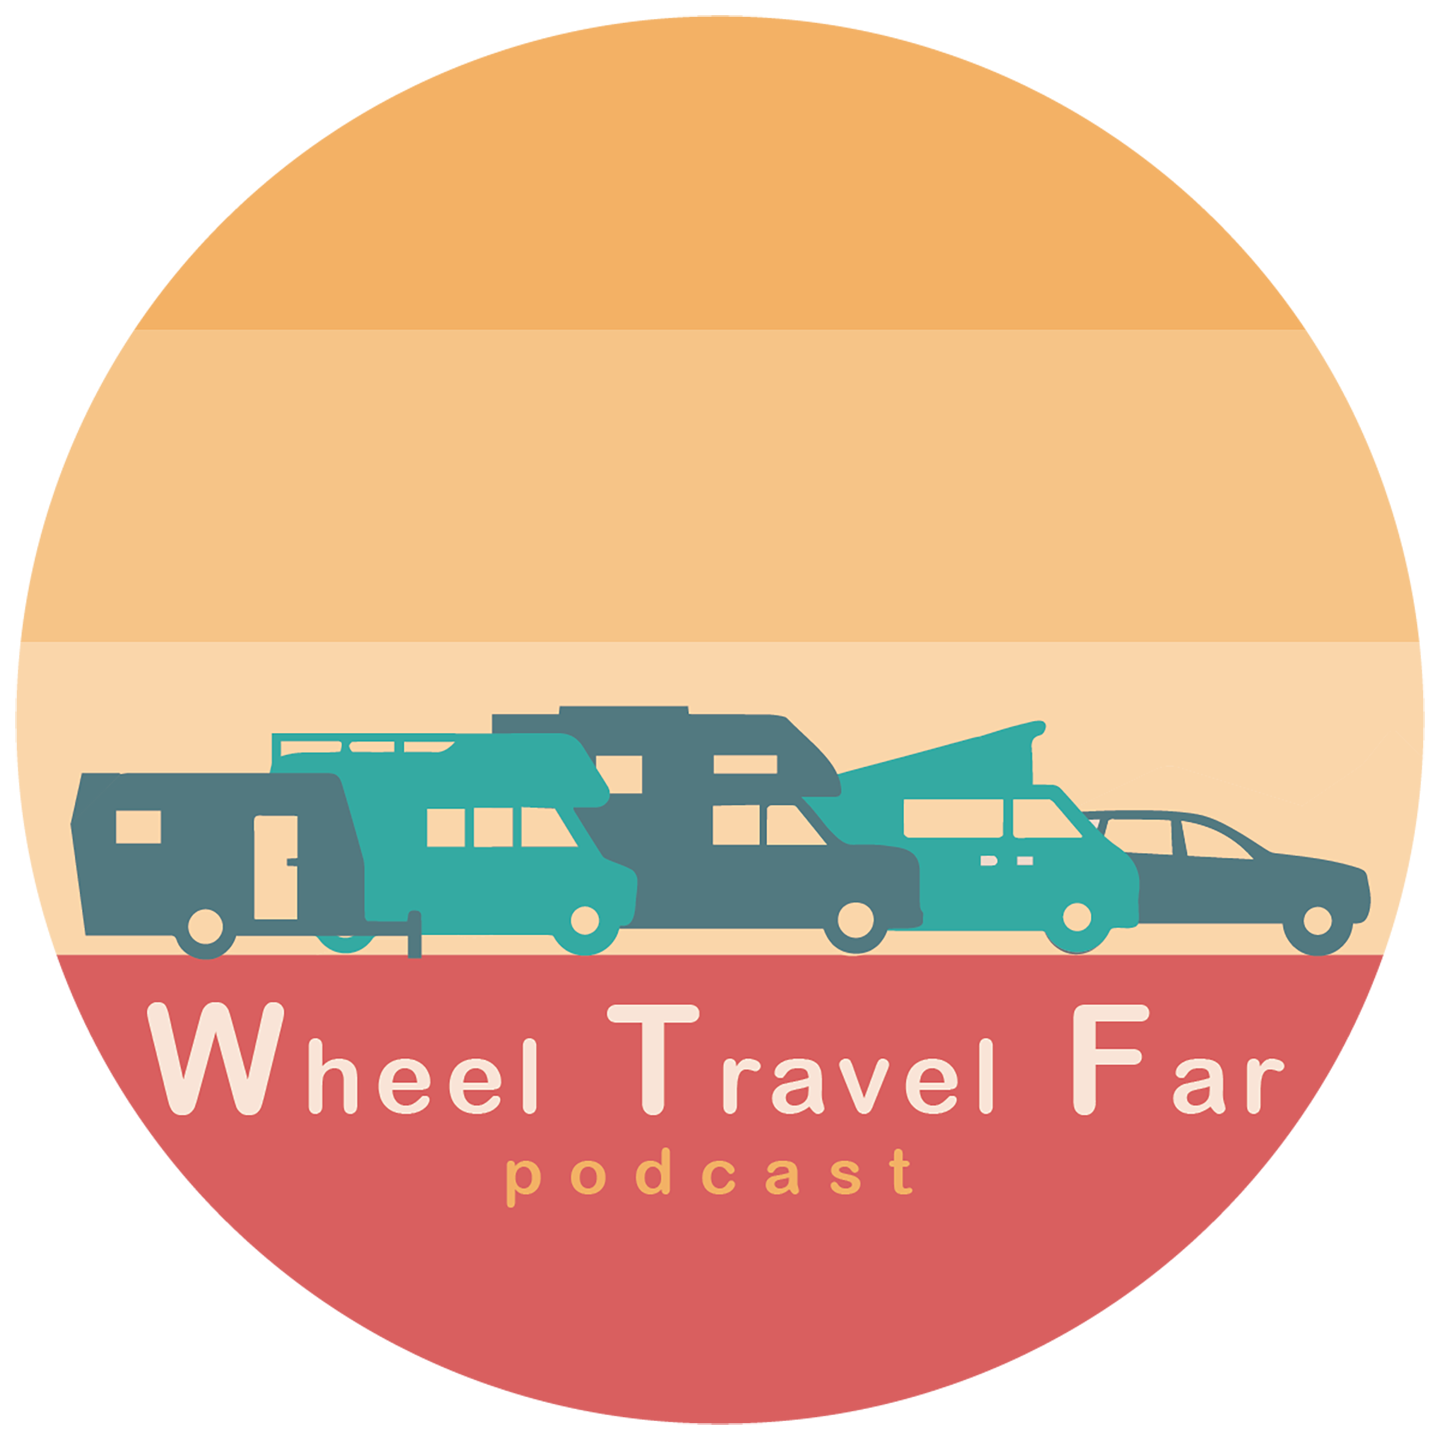 Wheel Travel Far